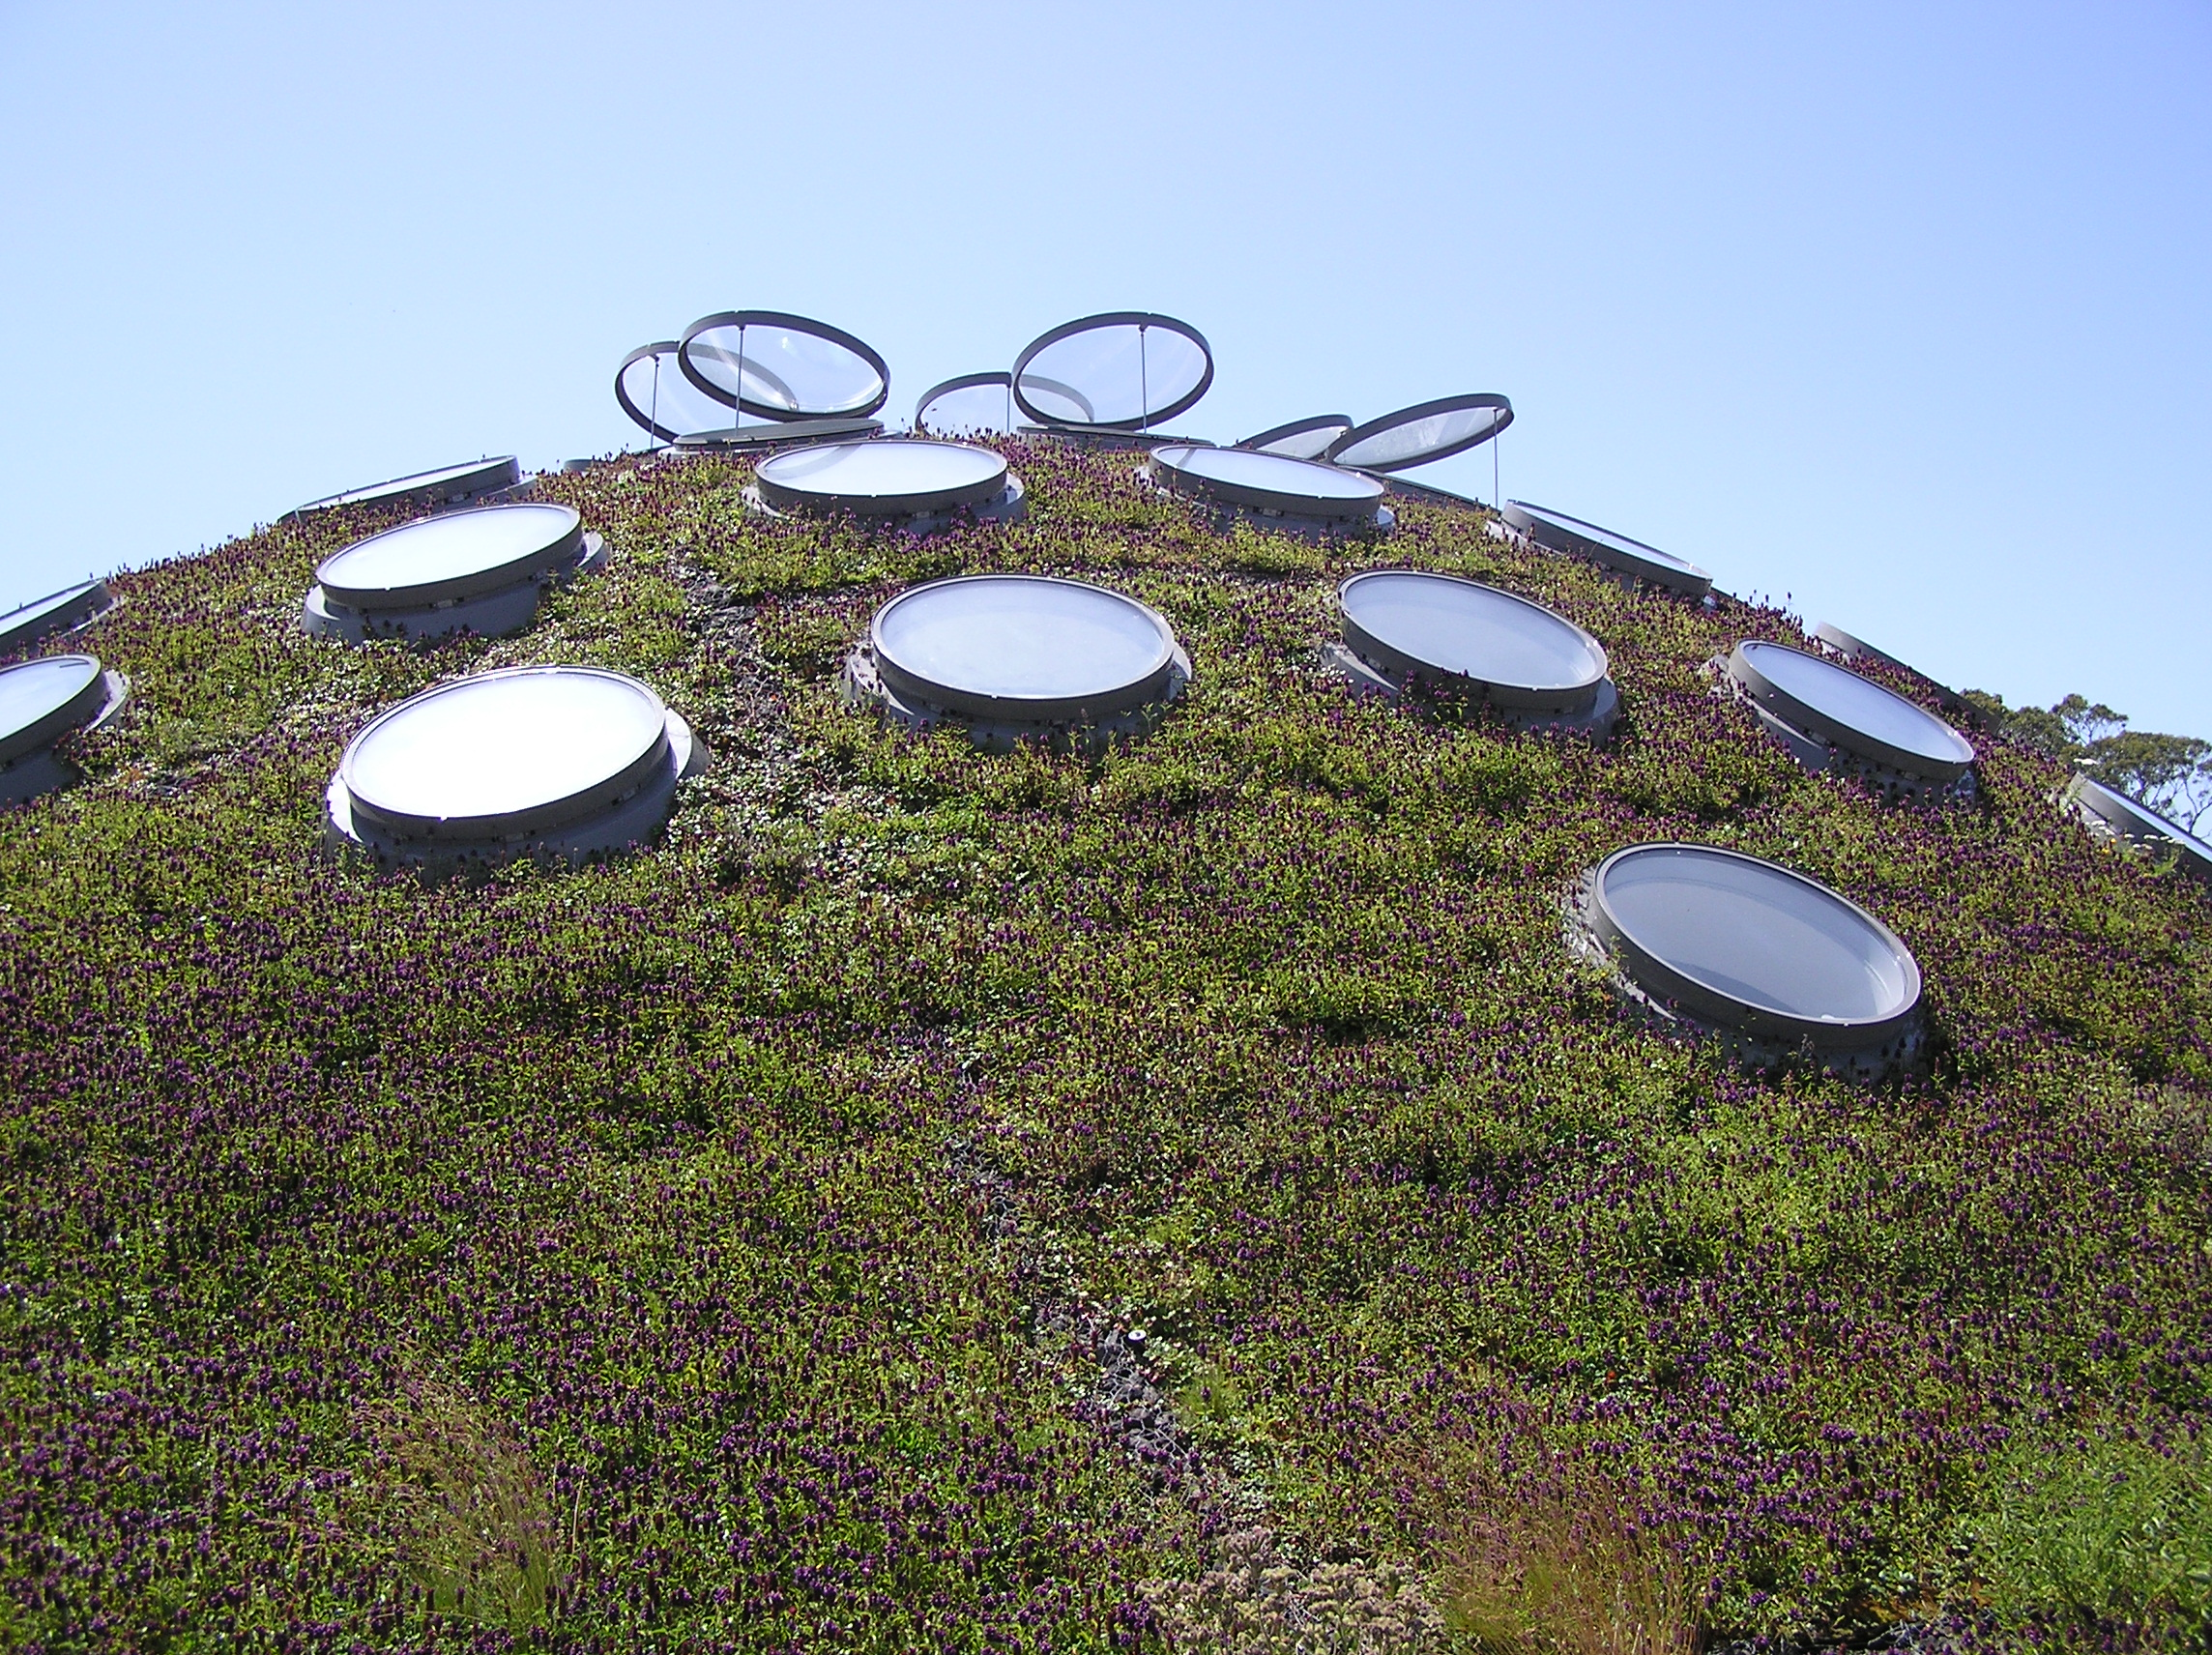 Green roof in San Francisco by Megan